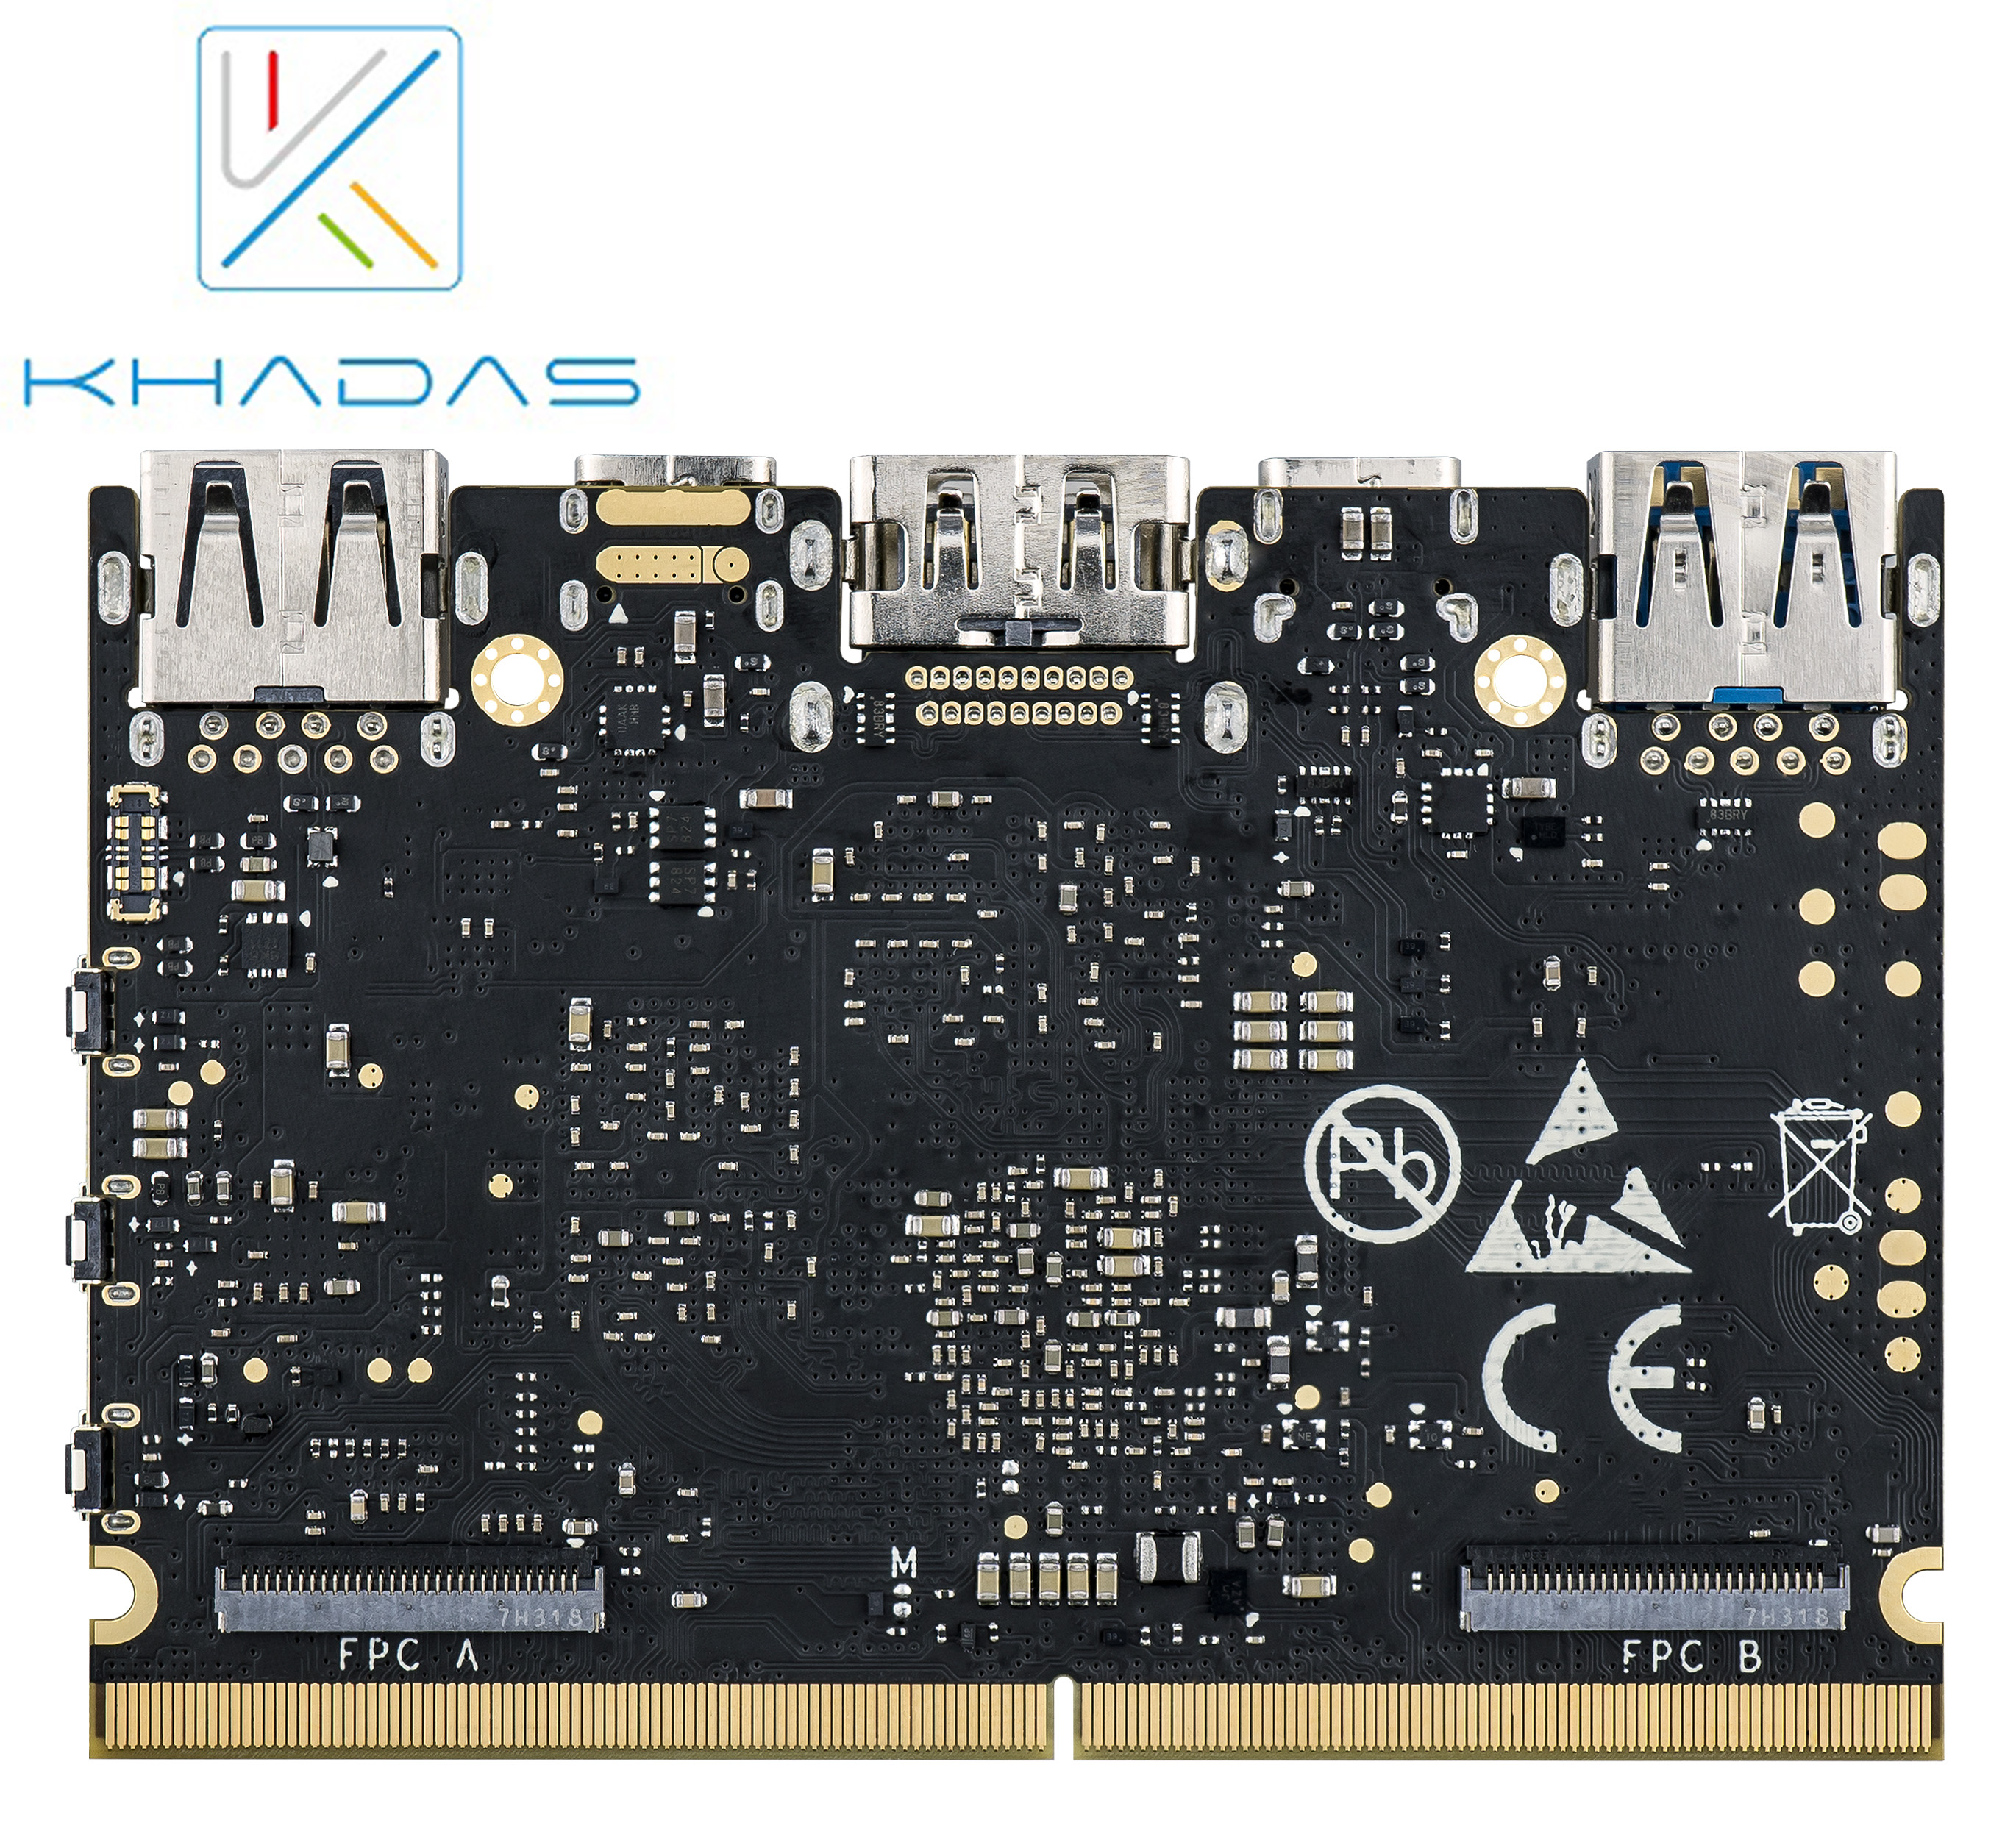 Khadas Edge Max with 128GB EMMC 5.1 RK3399 Soc Single Board Computer image